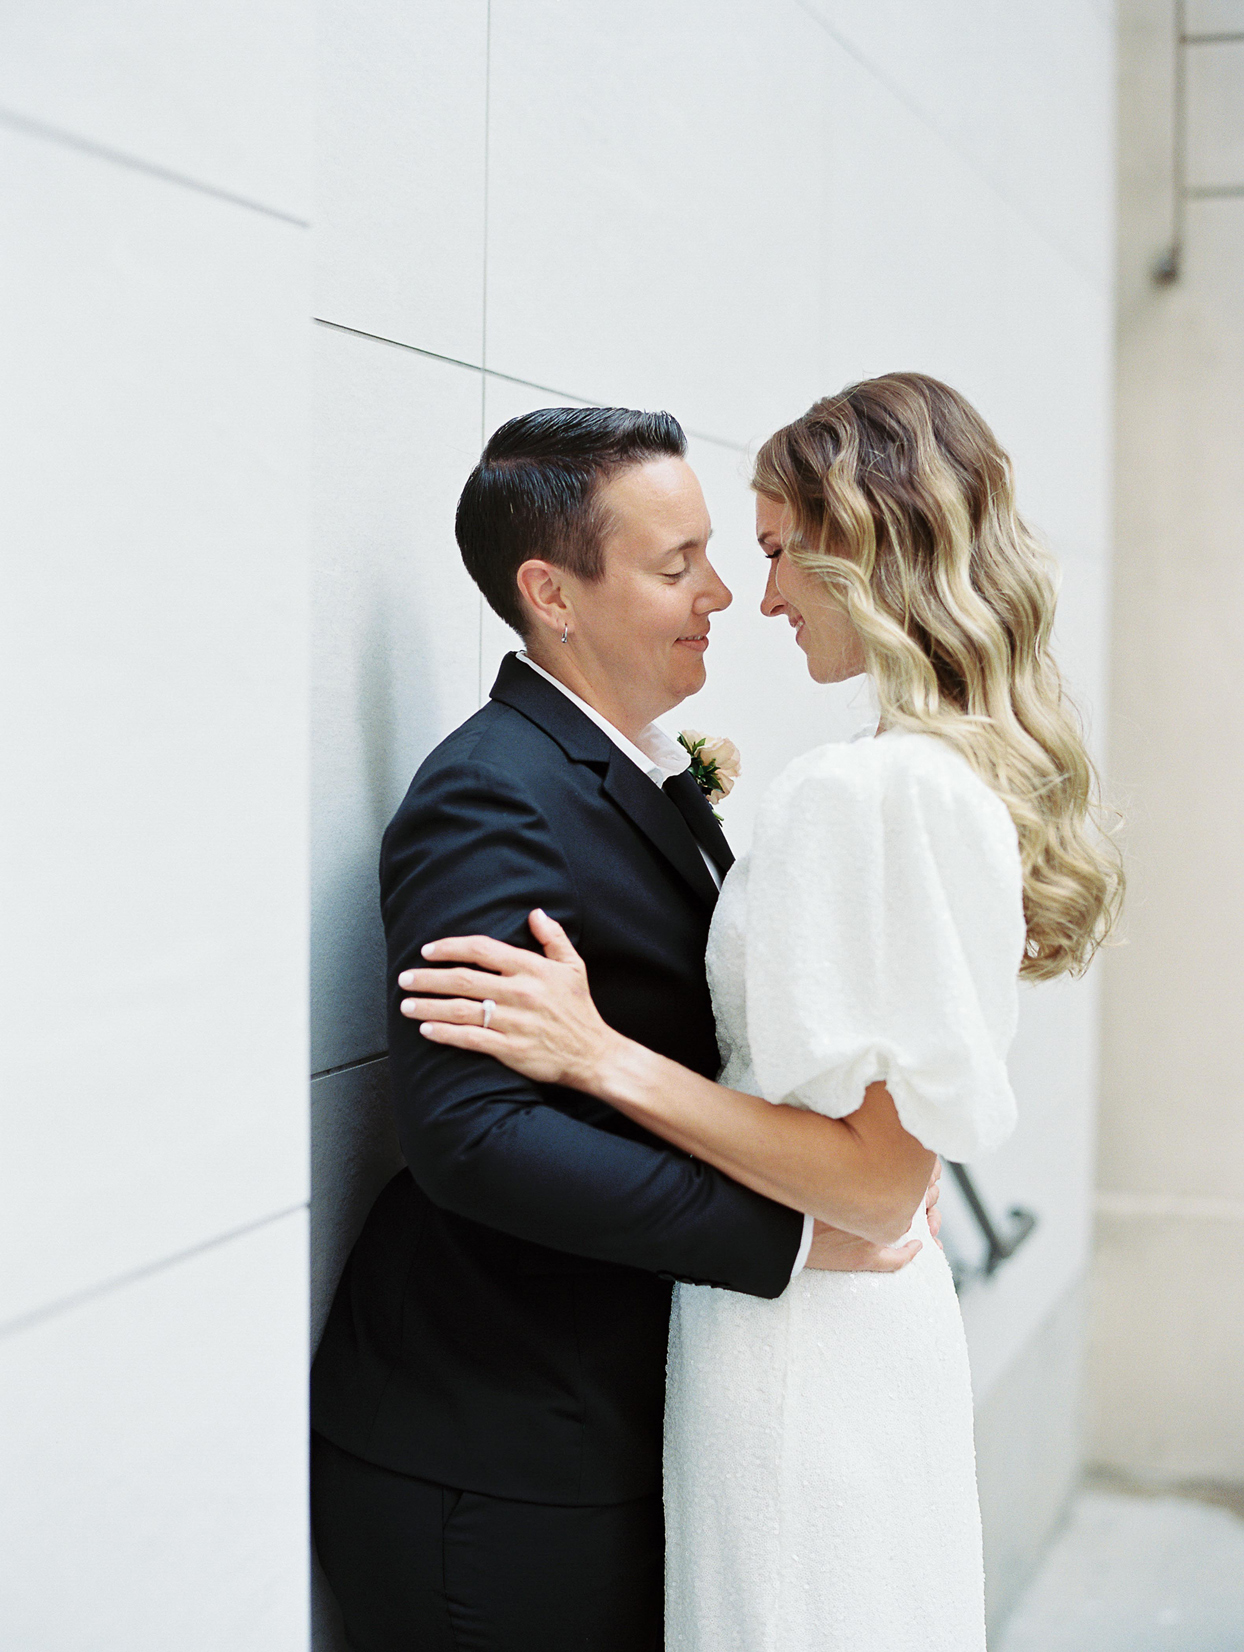 wedding couple embracing and smiling